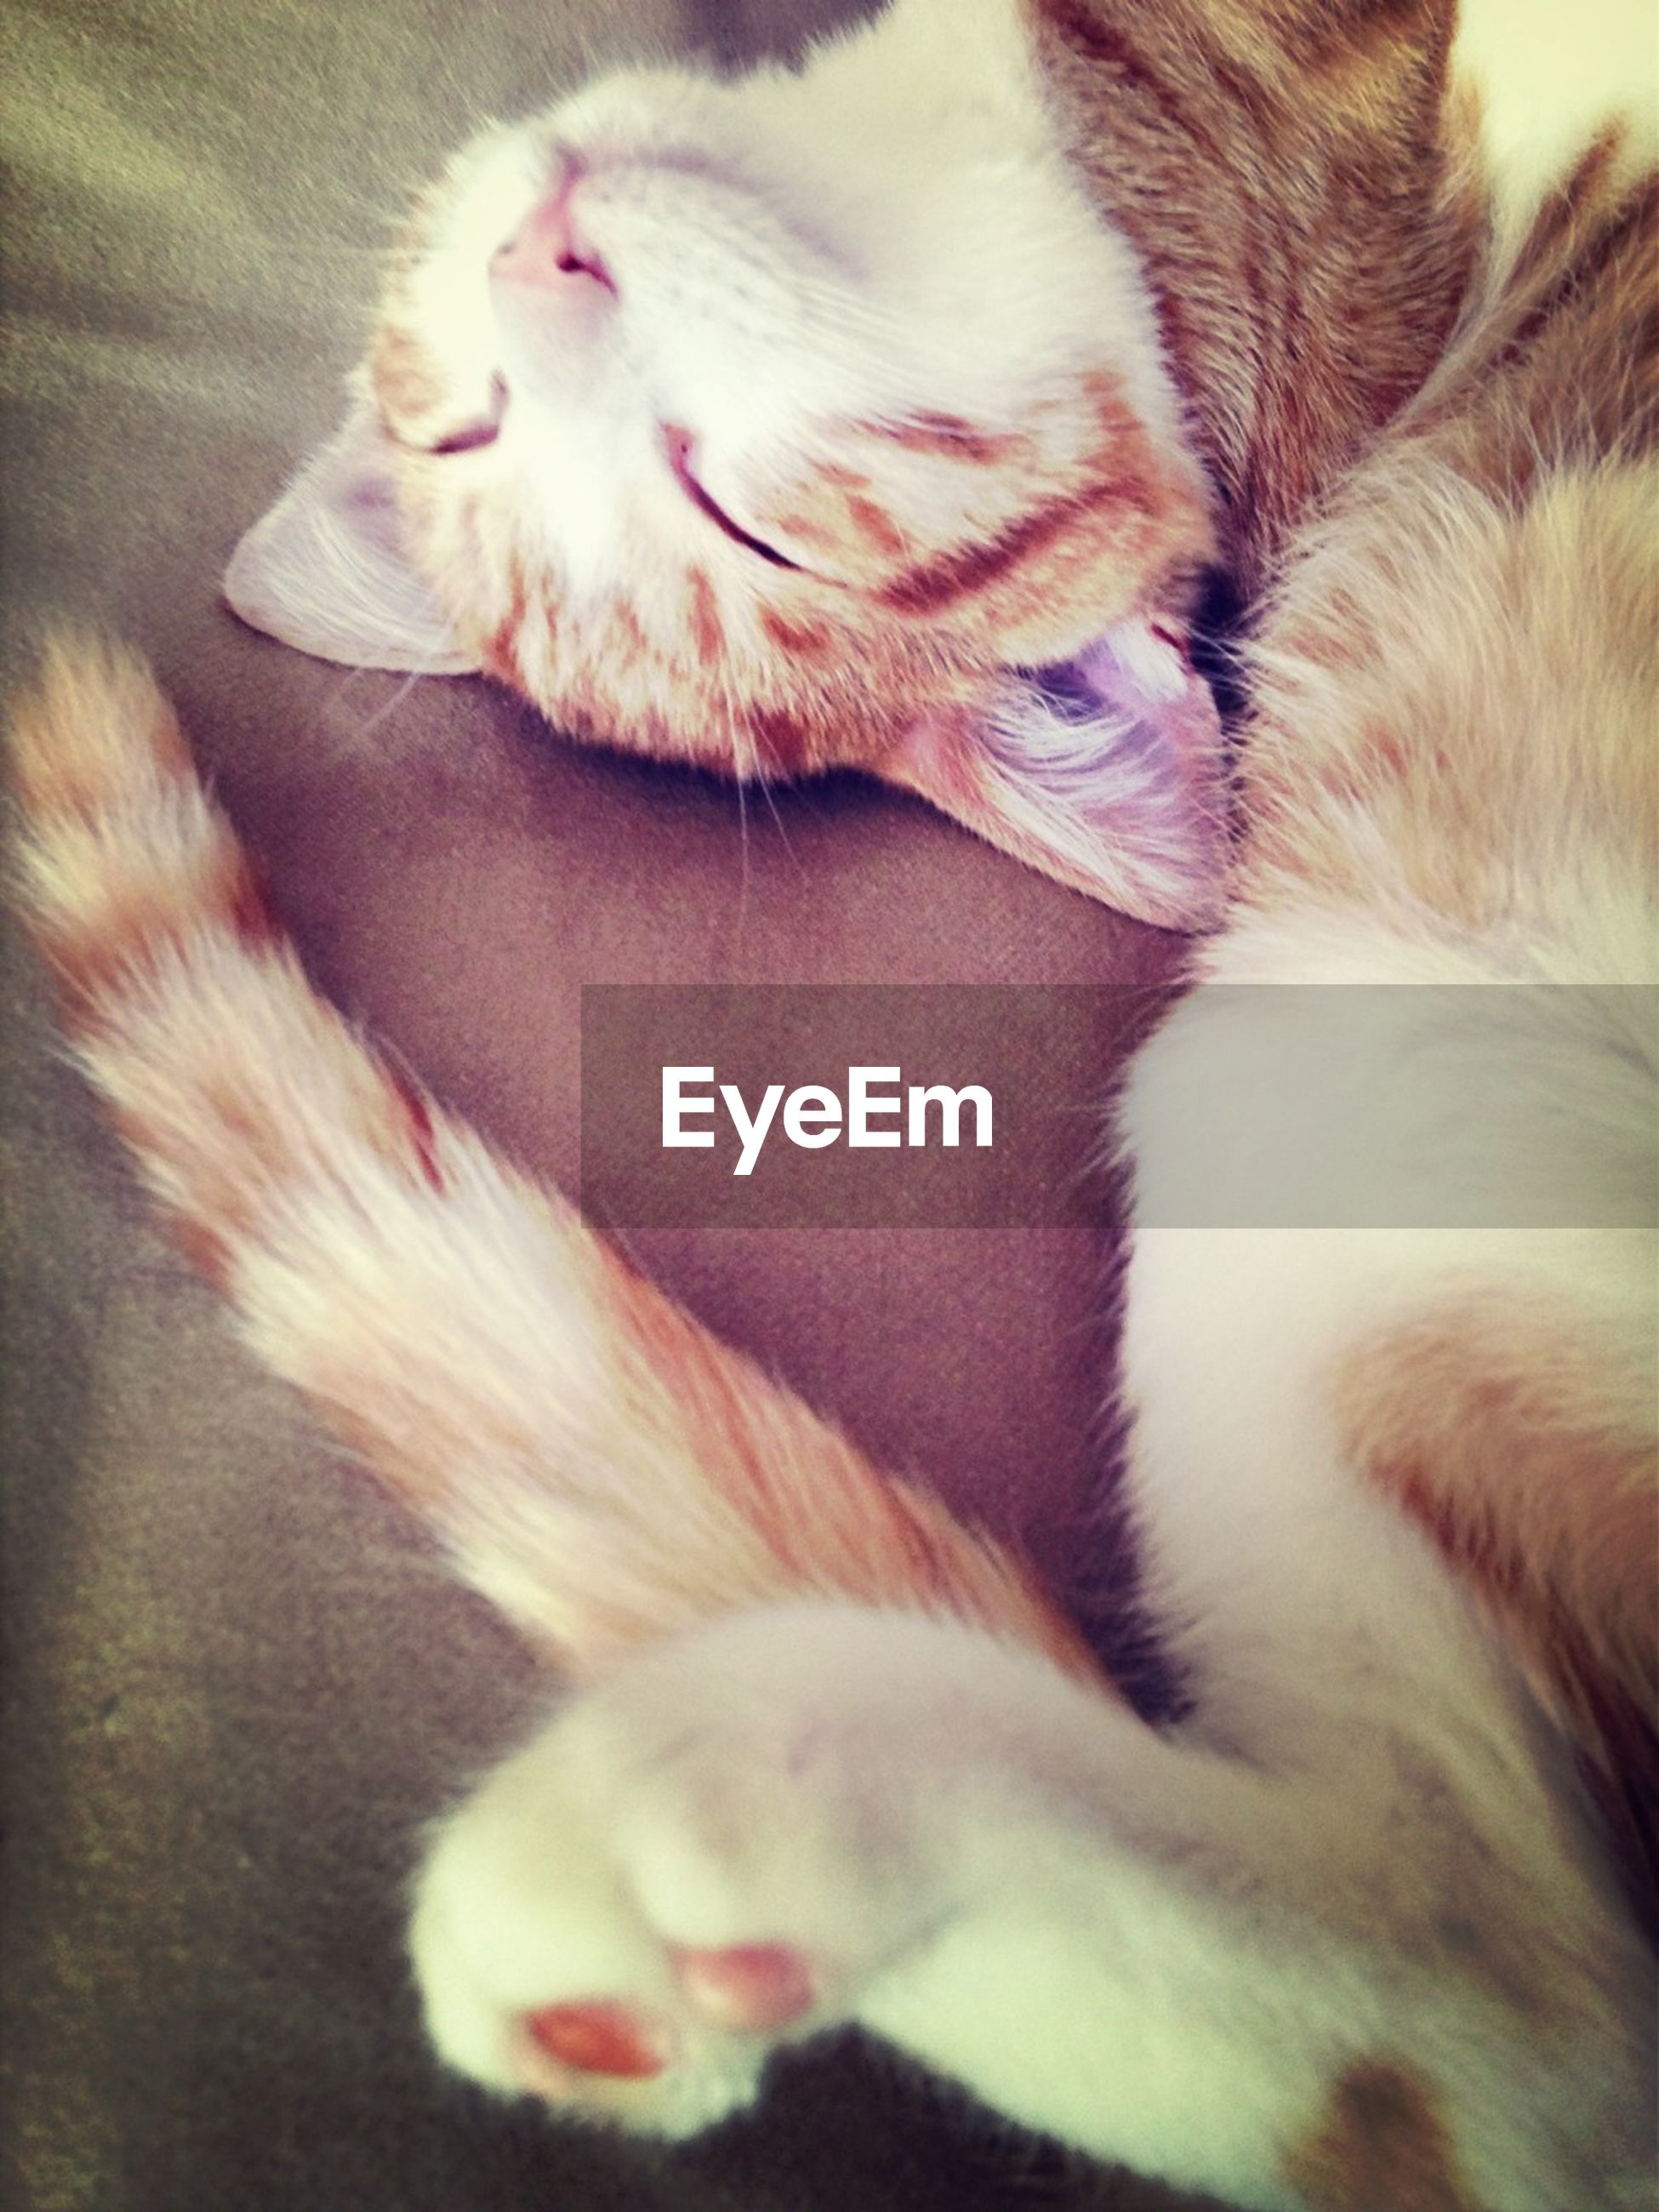 pets, animal themes, domestic animals, mammal, one animal, domestic cat, indoors, sleeping, cat, relaxation, feline, resting, lying down, close-up, whisker, eyes closed, high angle view, bed, comfortable, no people